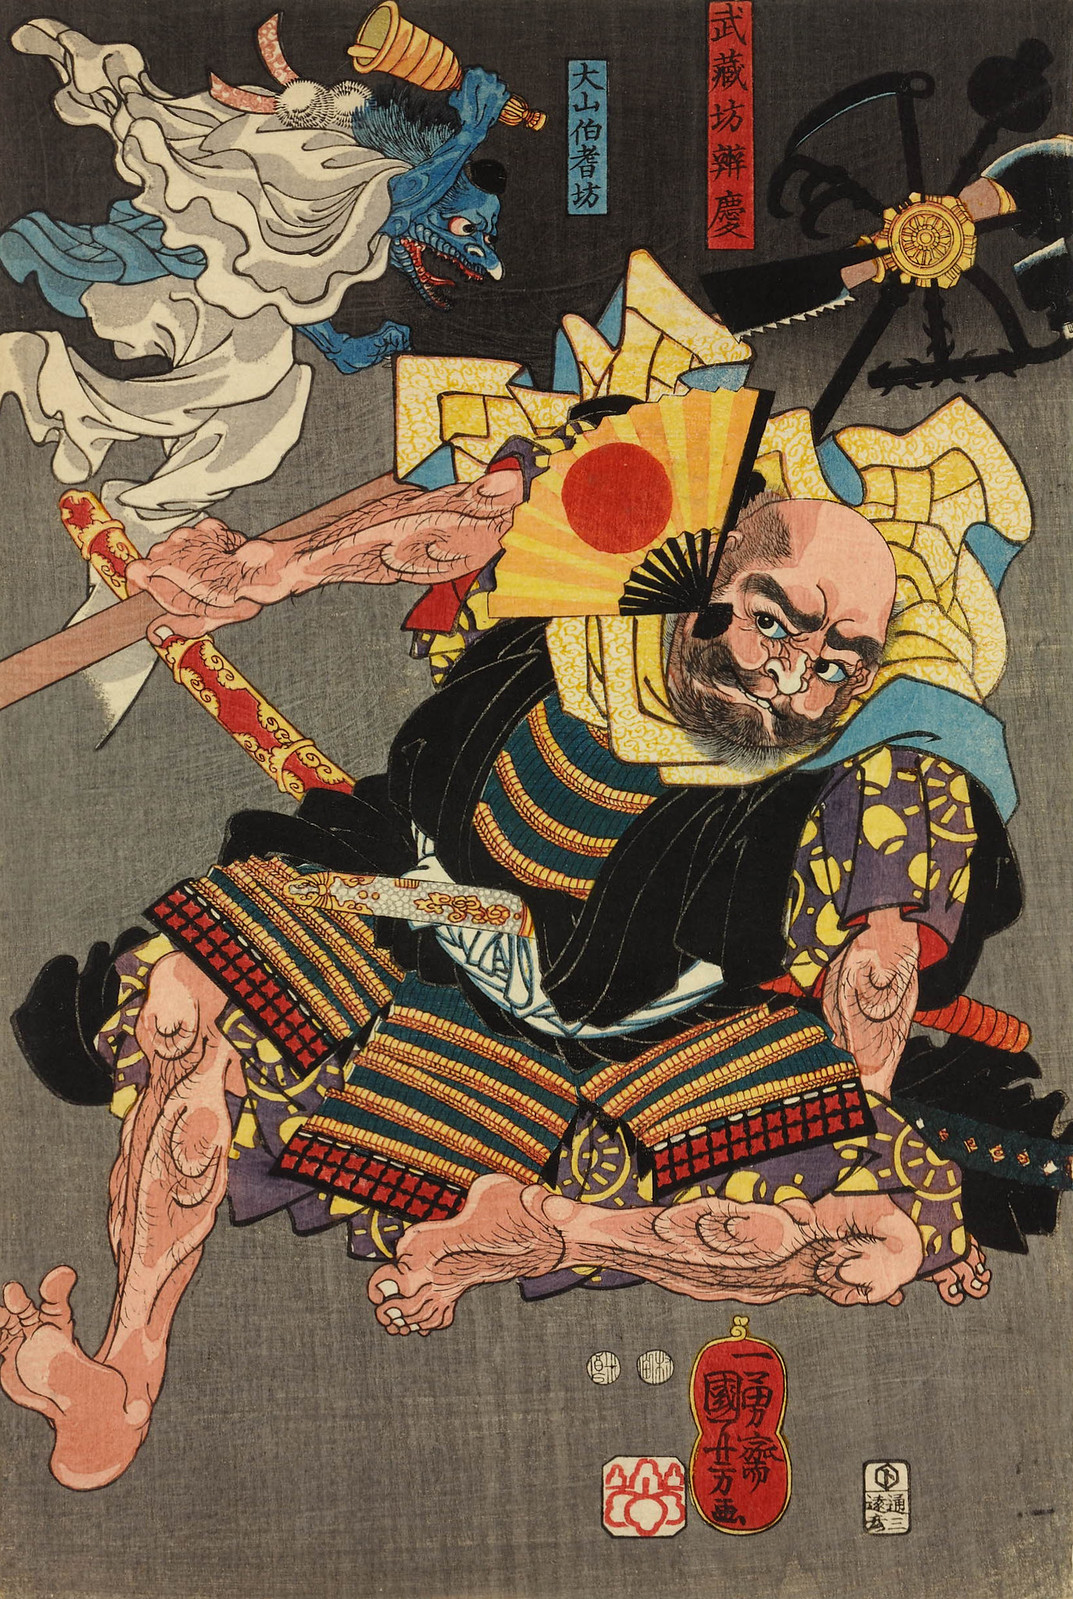 Utagawa Kuniyoshi - Ushiwakamaru (Yoshitsune) Fighting Benkei with the Help of the Tengu, 1847-50 (right panel)